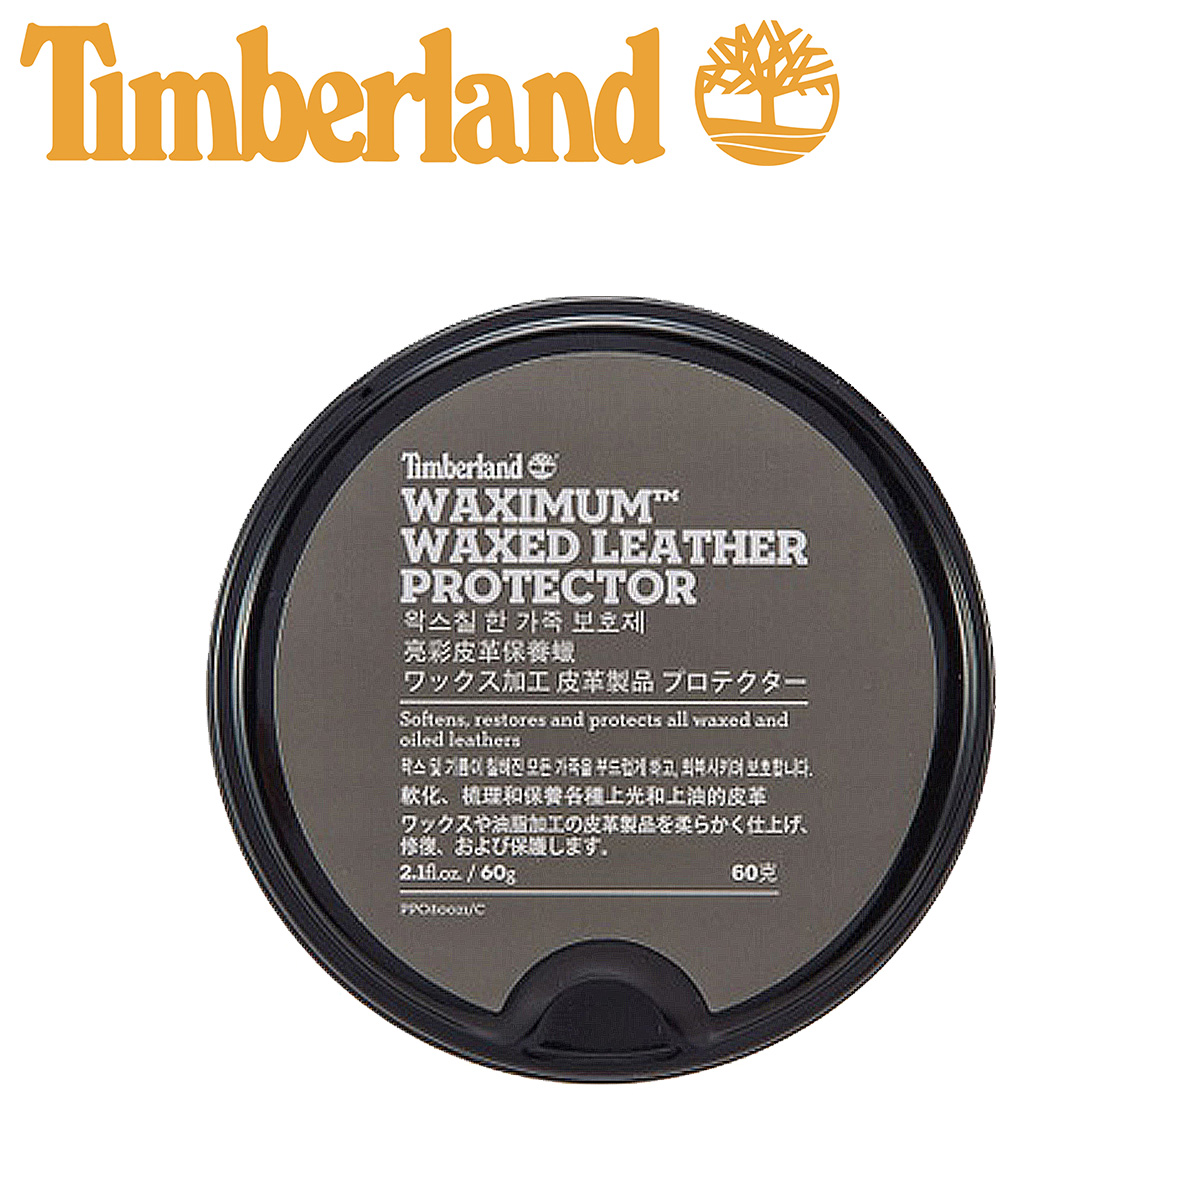 Timberland Timberland Shoo care wax waterproofing boots sneakers WAXIMUM WAXED LEATHER PROTECTOR A1FK6